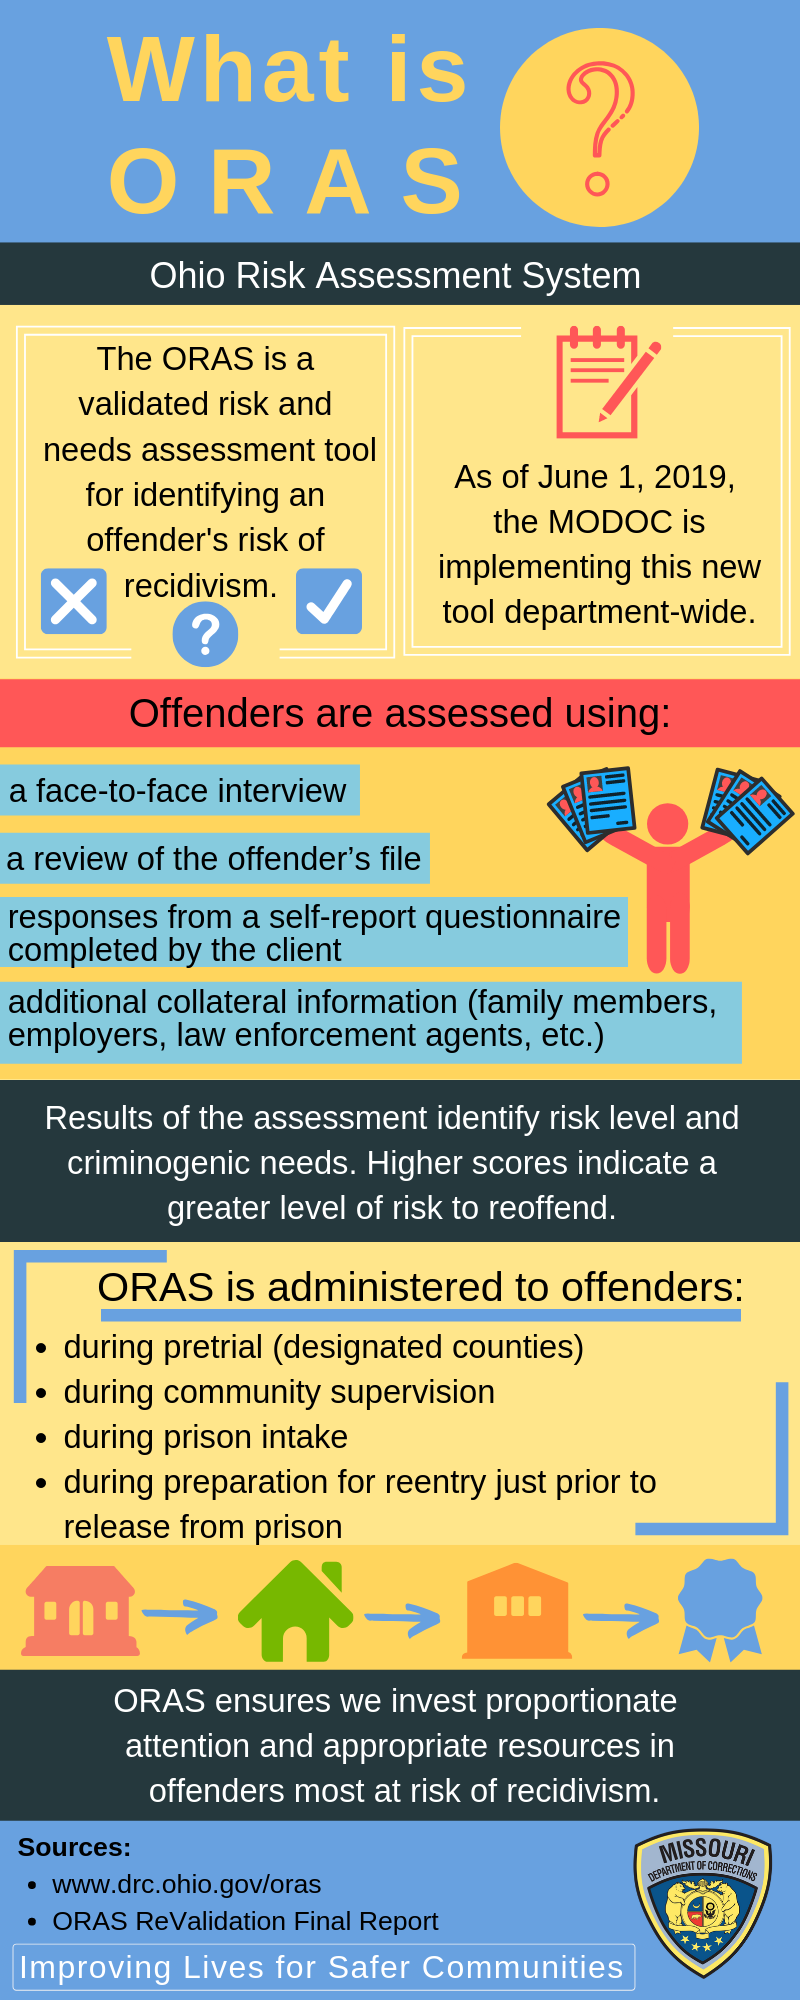 Explanation of the Ohio Risk Assessment System. The ORAS is a validated risk and needs assessmetn tool for identifying an offender's risk of recidivism. As of June 1, 2019, MODOC is implemetning this new department-wide tool. Offenders are assessed using face-to-face interviews, offender file reviews, questionnaires adn additional collateral information. REsults of teh assessmetn indeitfy risk level and criminogenic needs. Higher scores indicate a greater level of risk to reoffend.